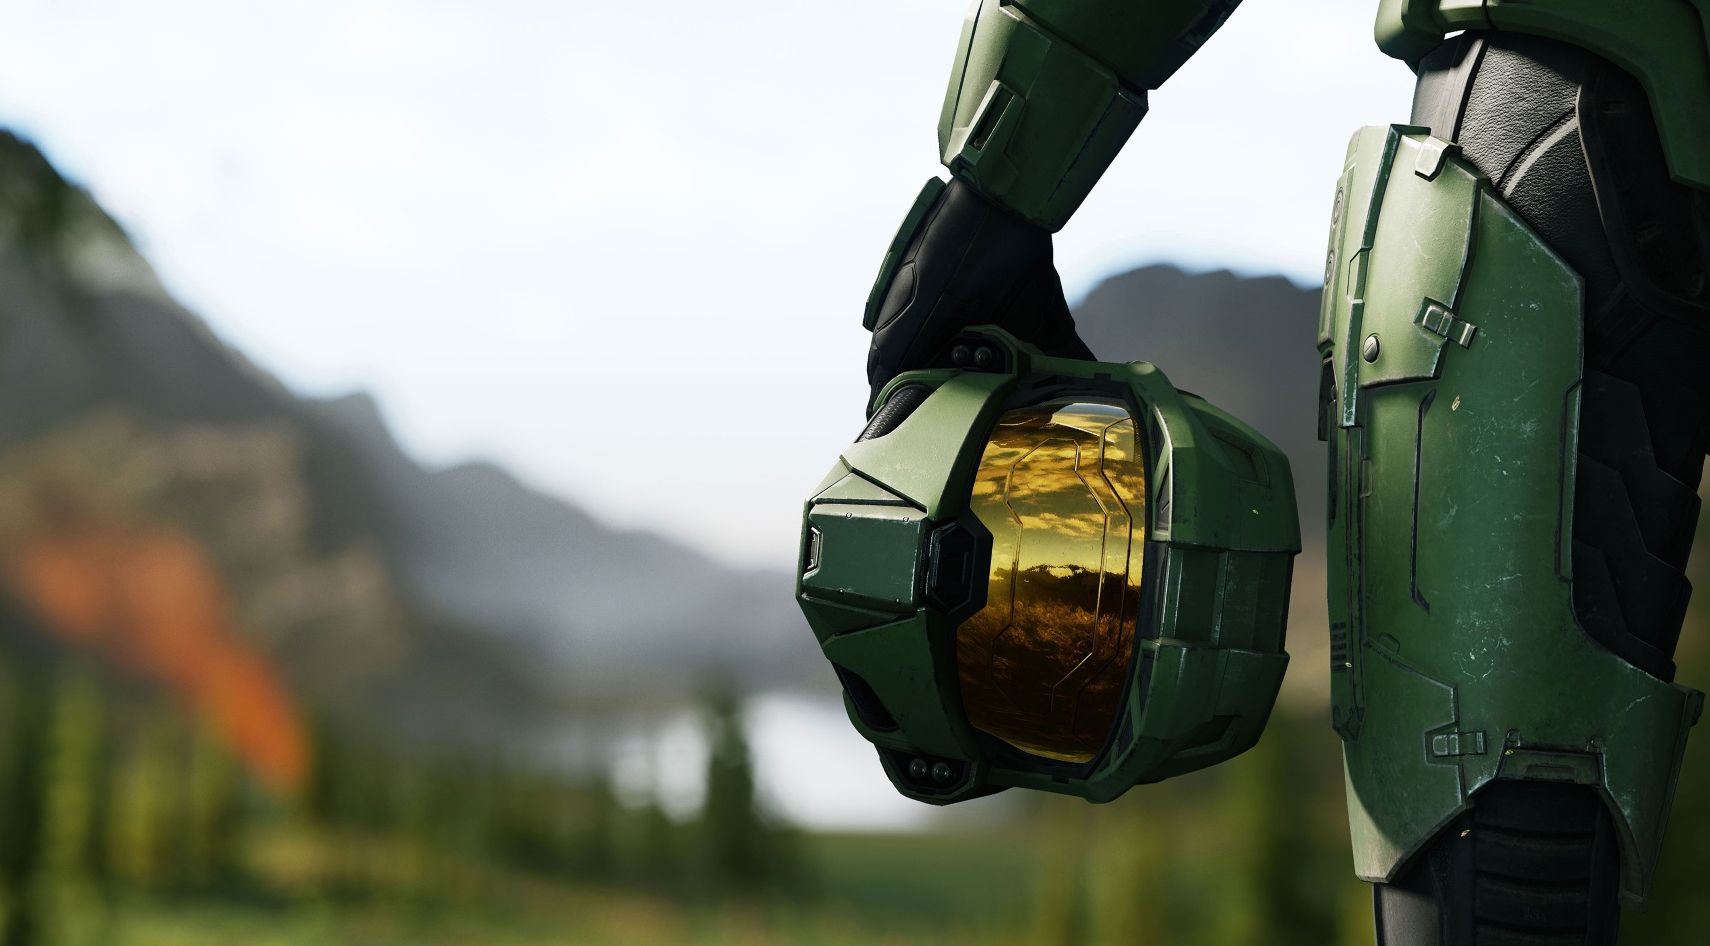 343 Industries Seems To Be Developing A New Halo Game, According To This Job Post